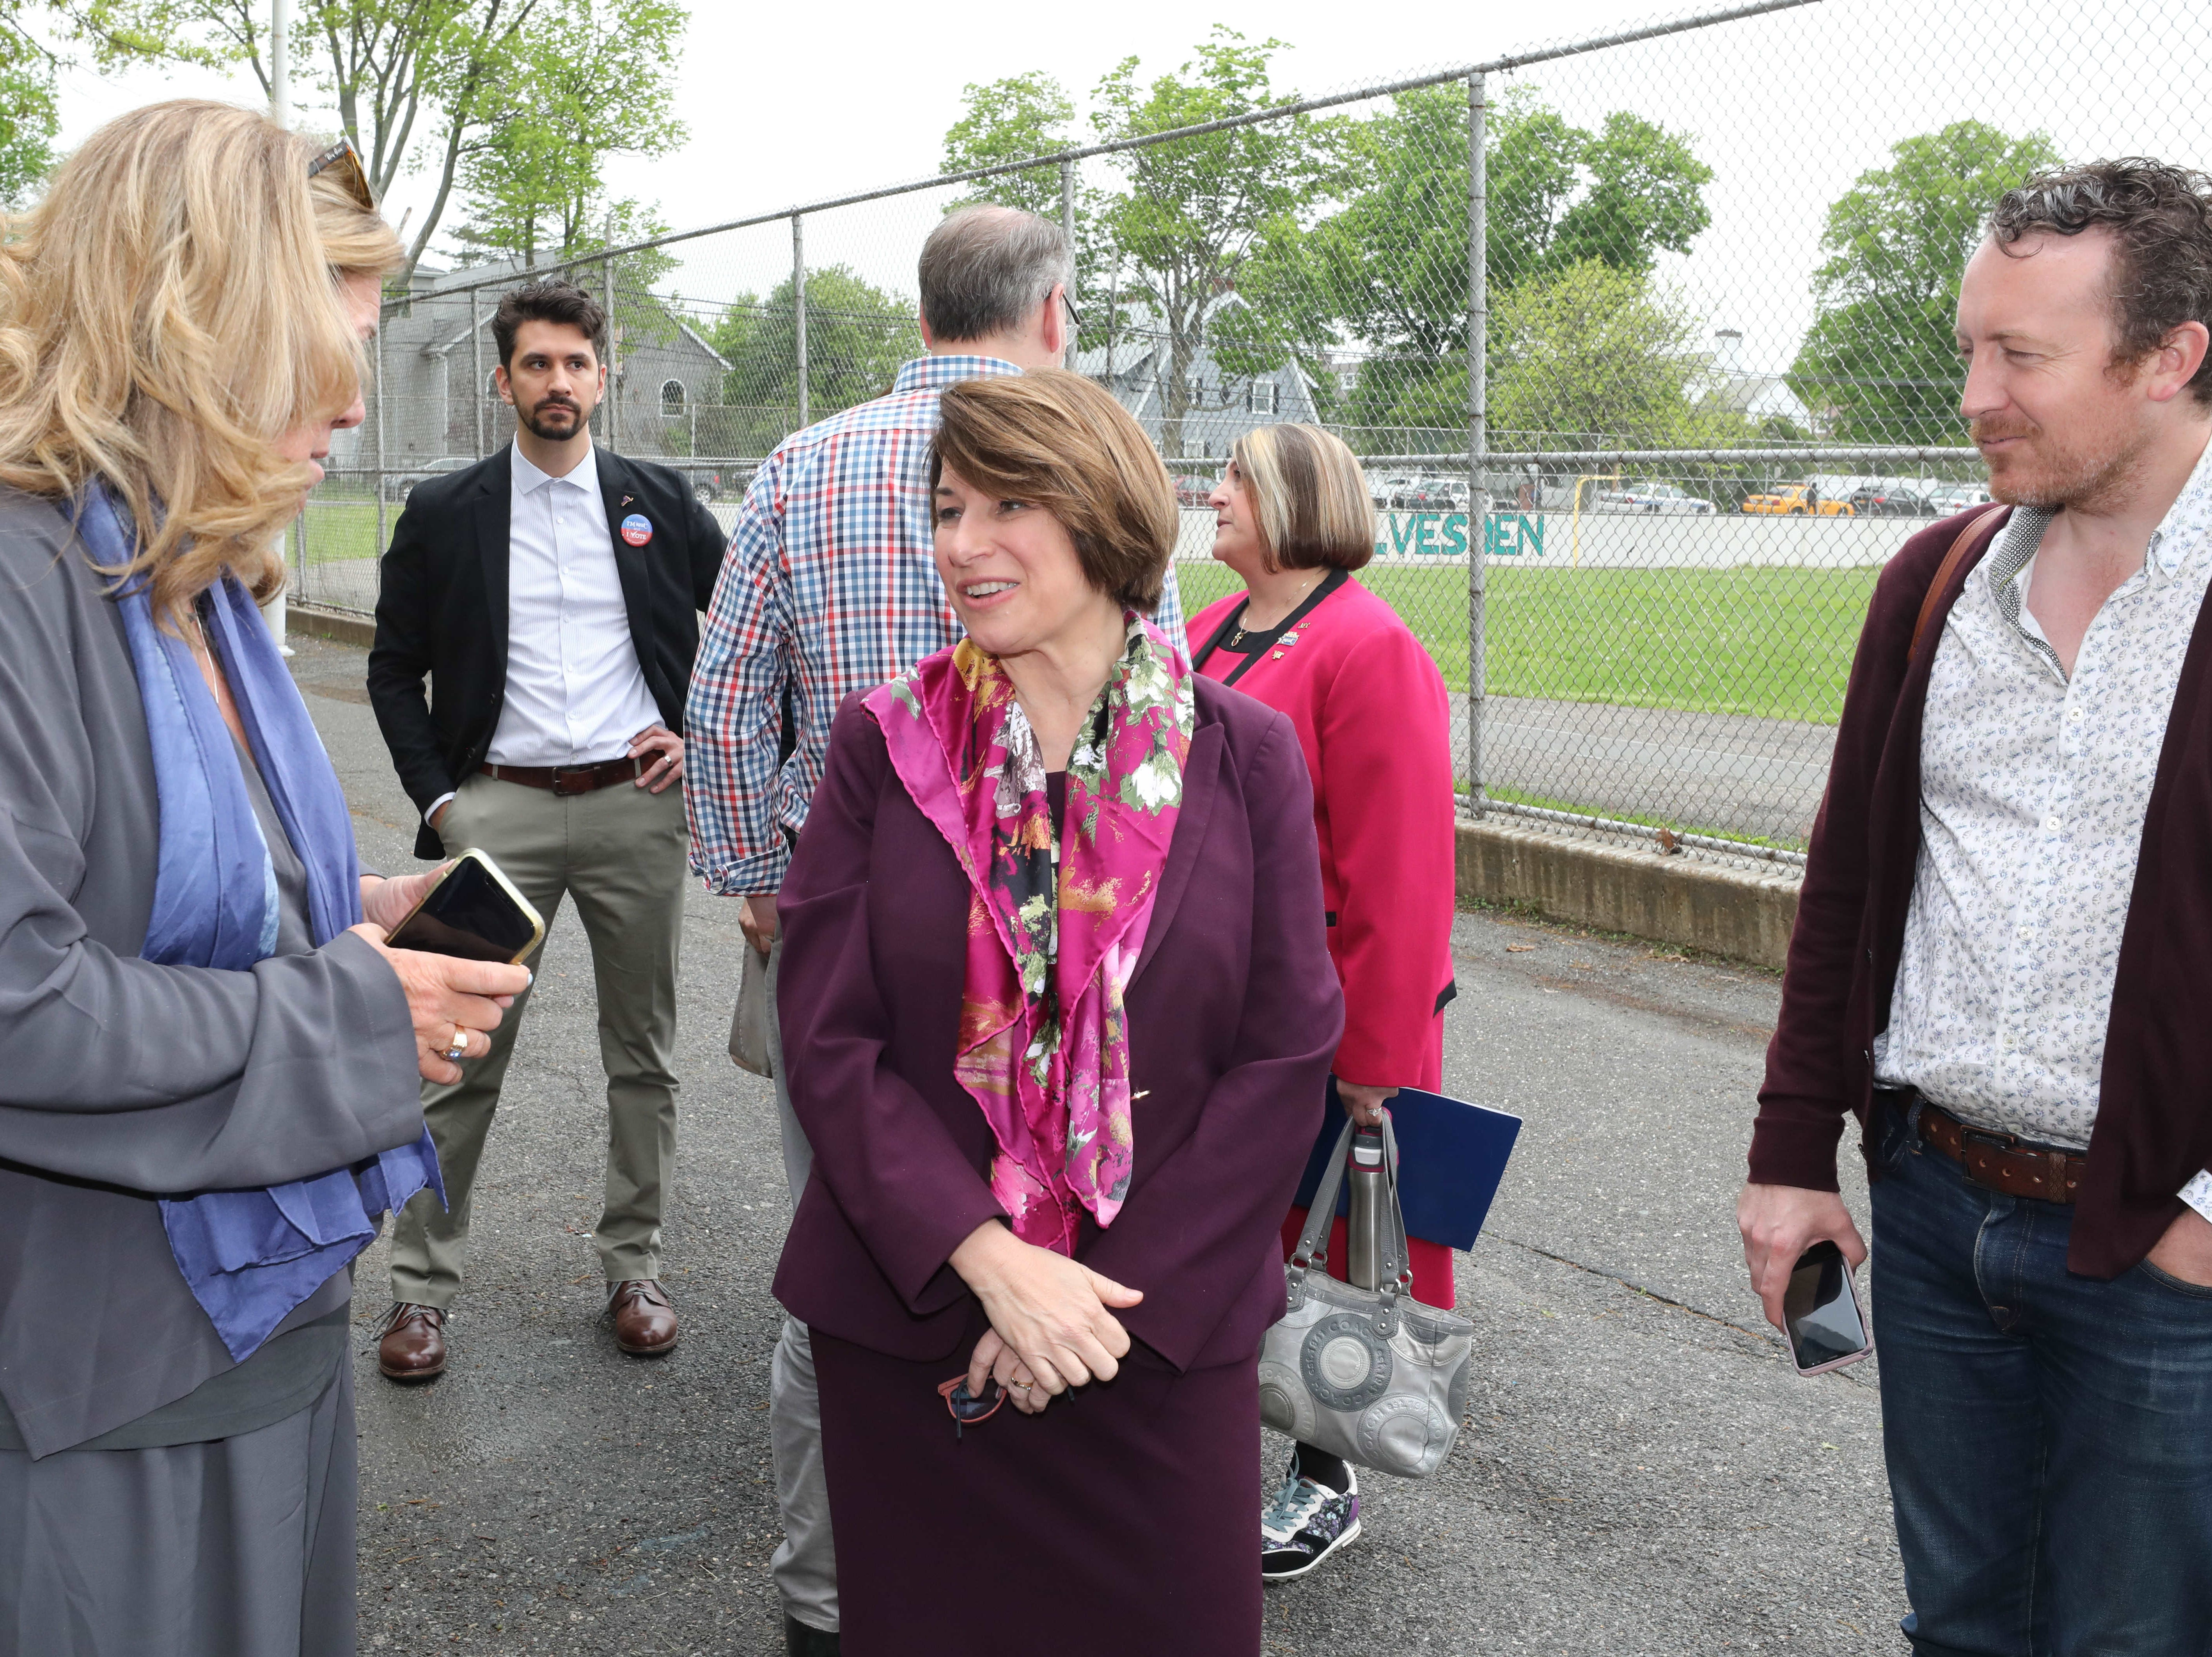 U.S. Sen. Amy Klobuchar (D-Minn.), a Democratic presidential candidate, greets people outside of Gorton High School in Yonkers, May 10, 2019.